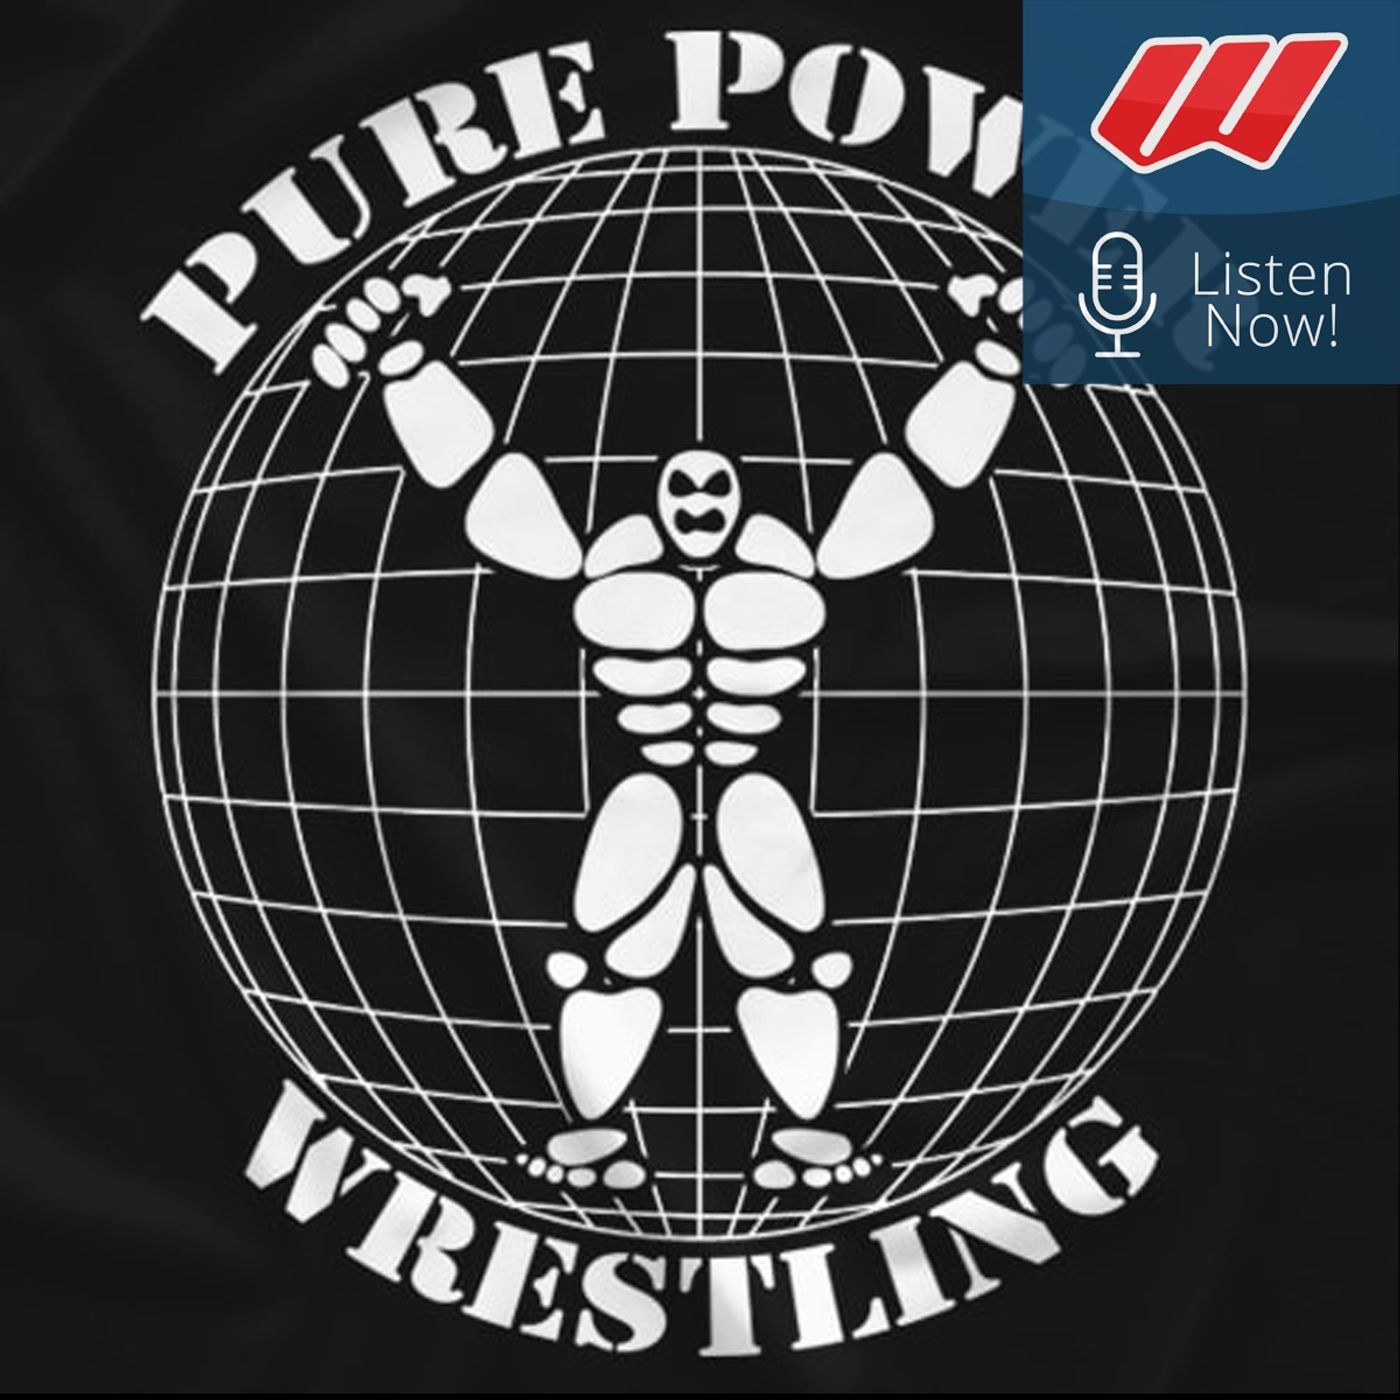 FEEL THE POWER!!! Let's chat the PPW Power Rumble! (2020/03/02)